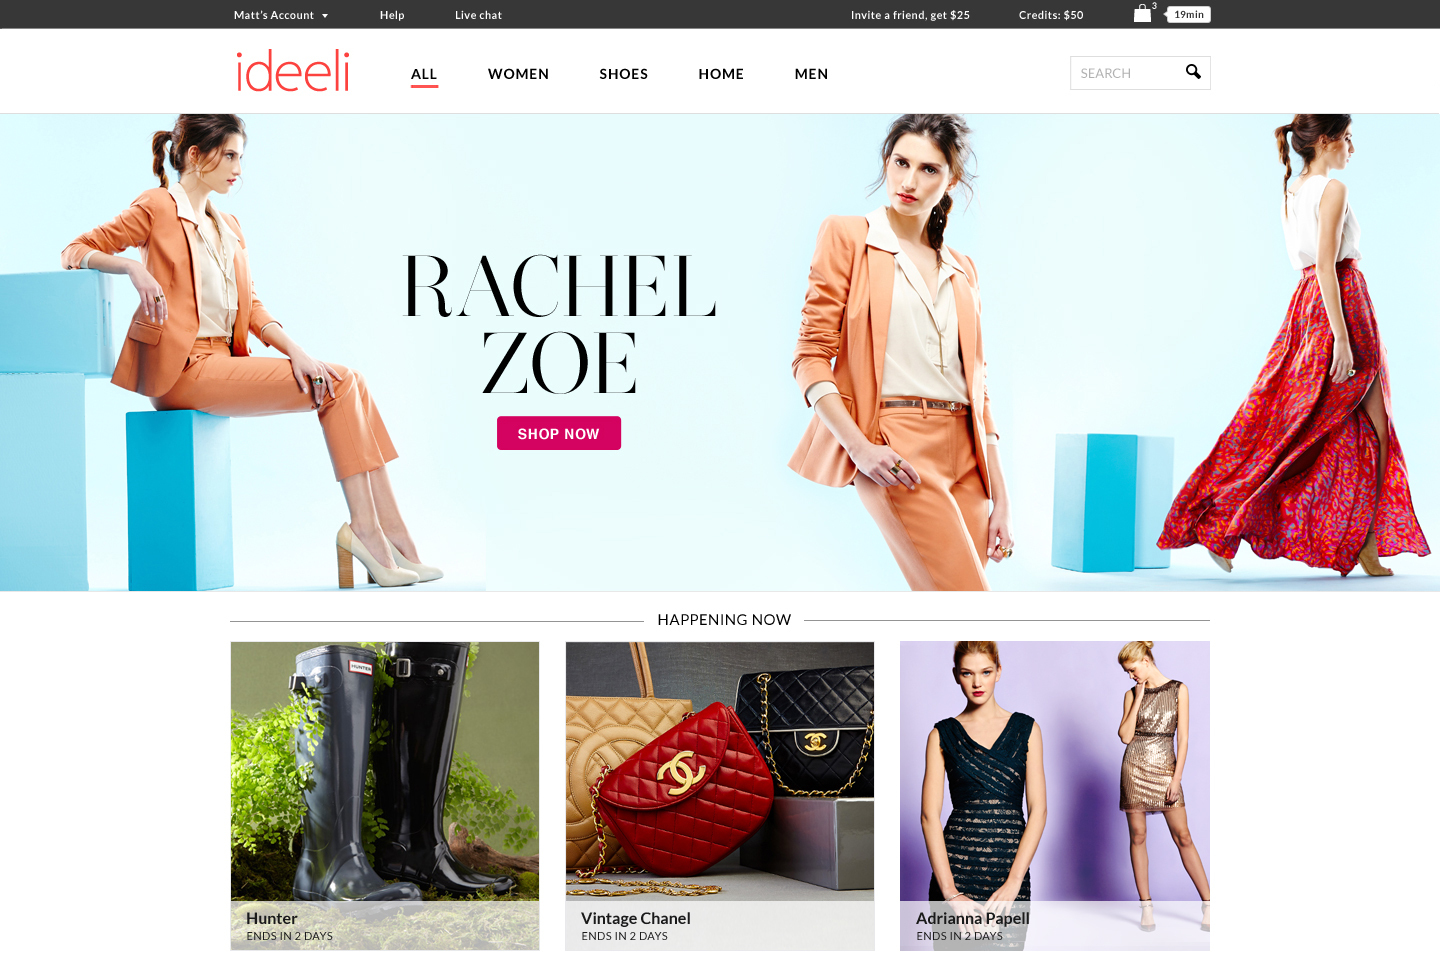 ideeli.com's newly redesigned website. (Photo: Business Wire)